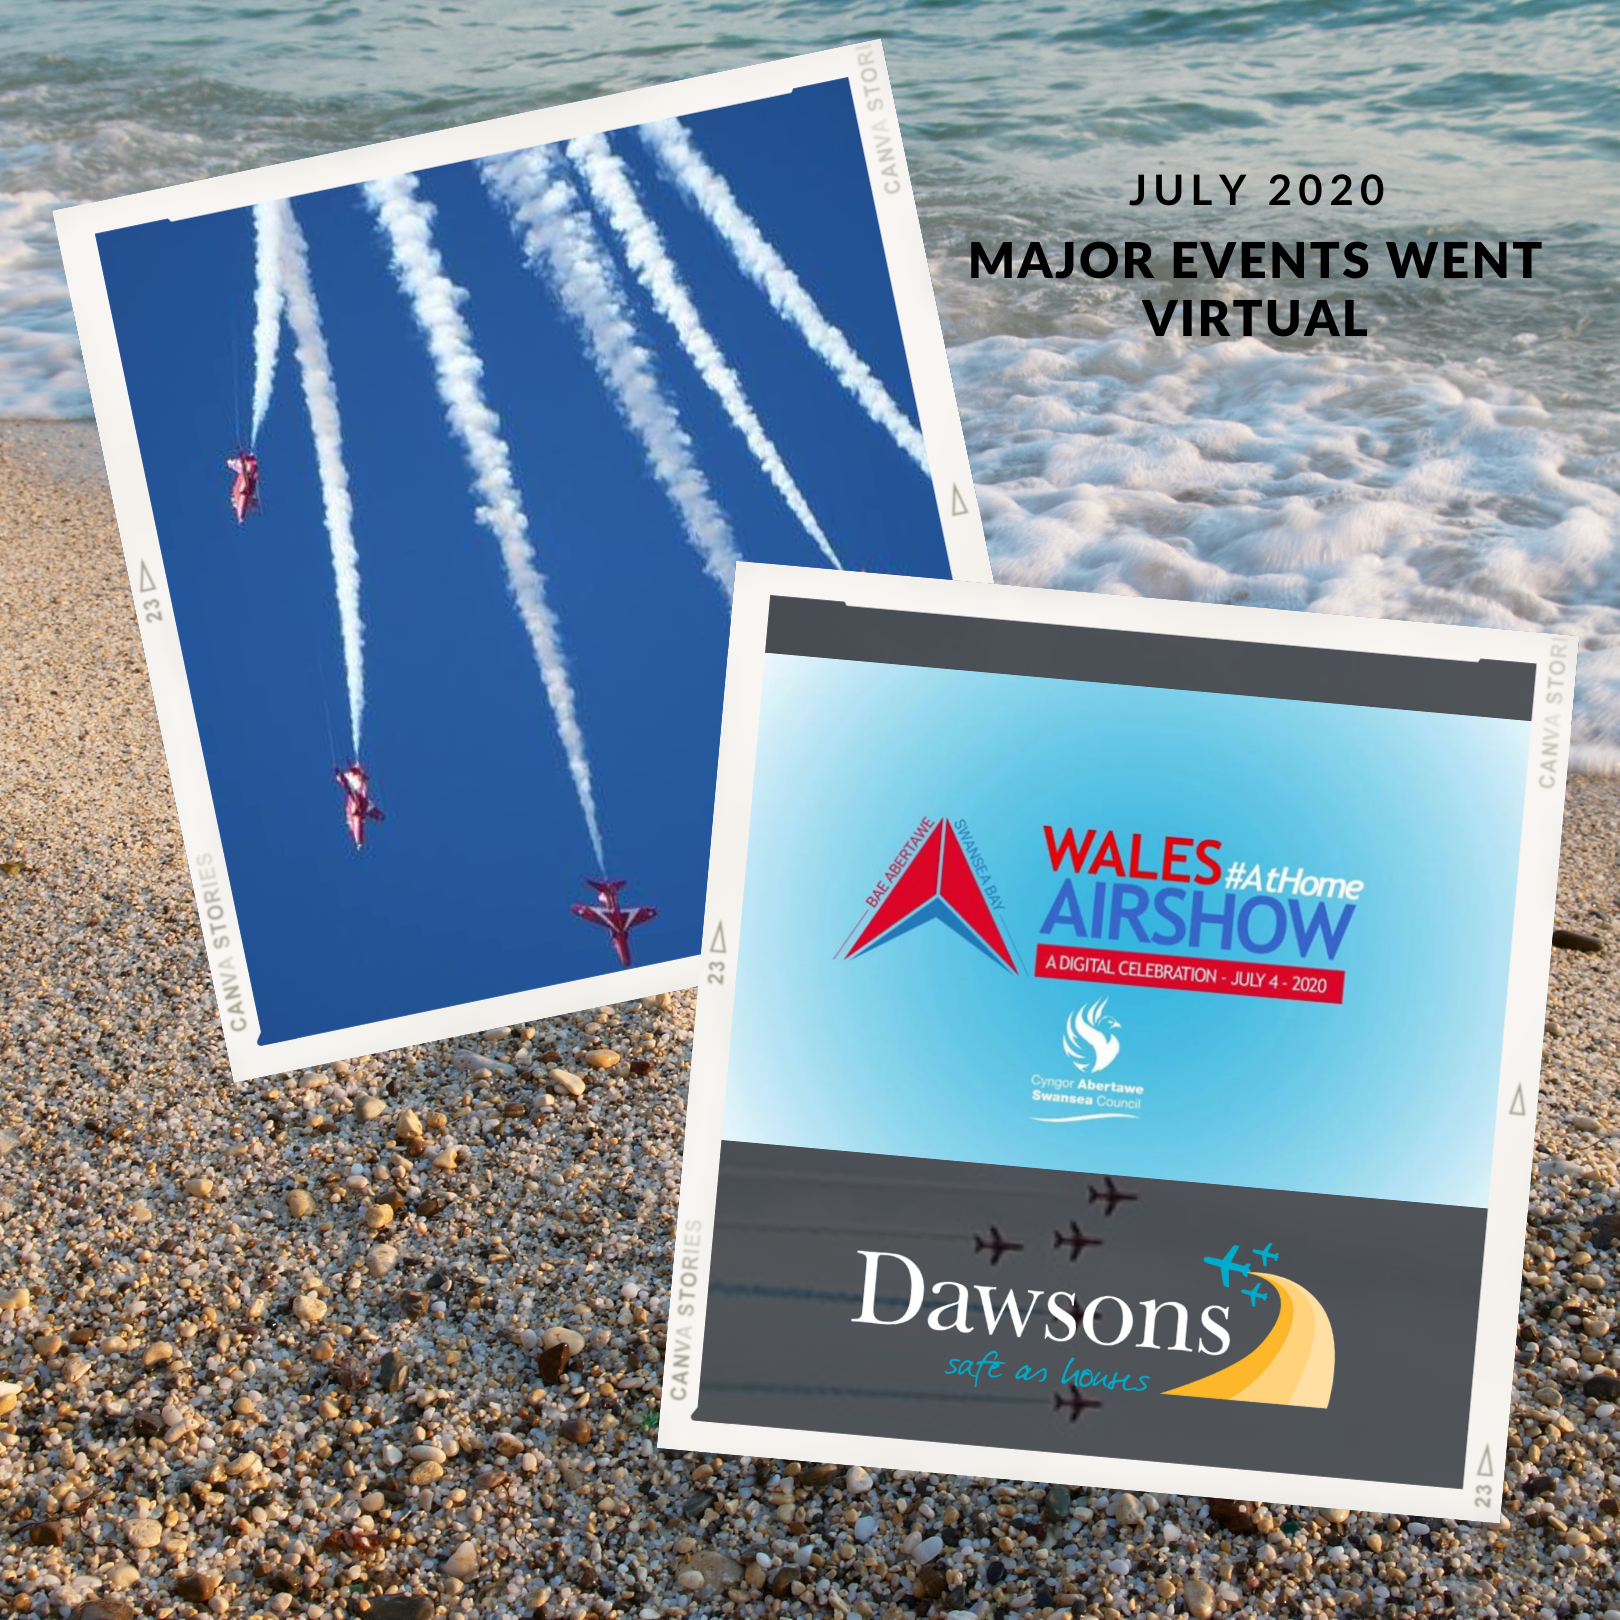 Dawsons sponsored the virtual wales airshow and the red arrows display.